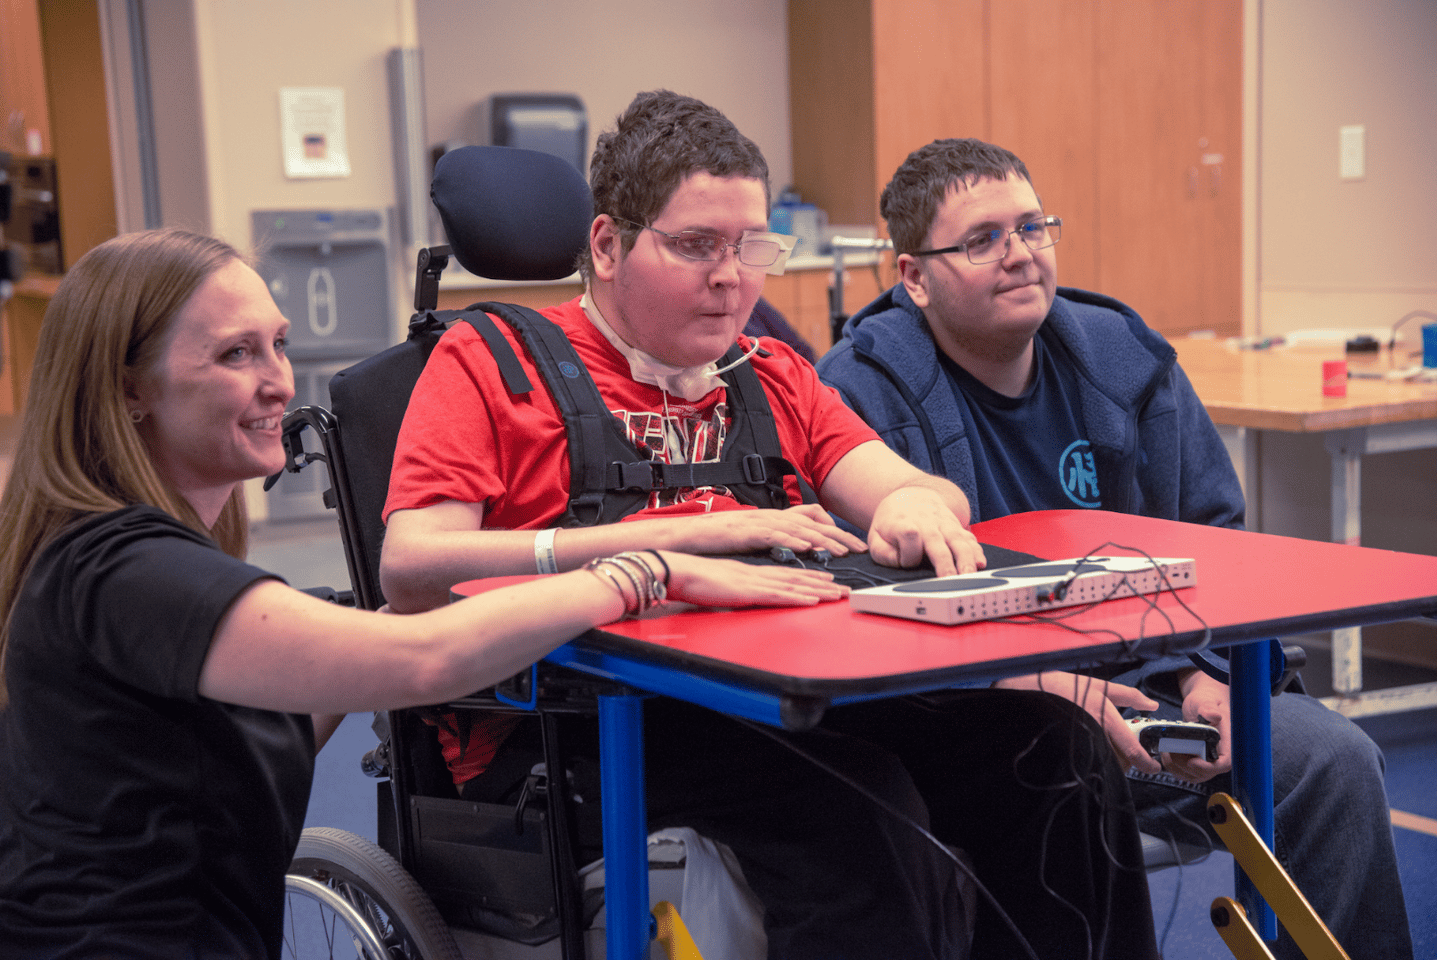 A patient with cerebral palsy plays a game usingthe Xbox Adaptive Controller